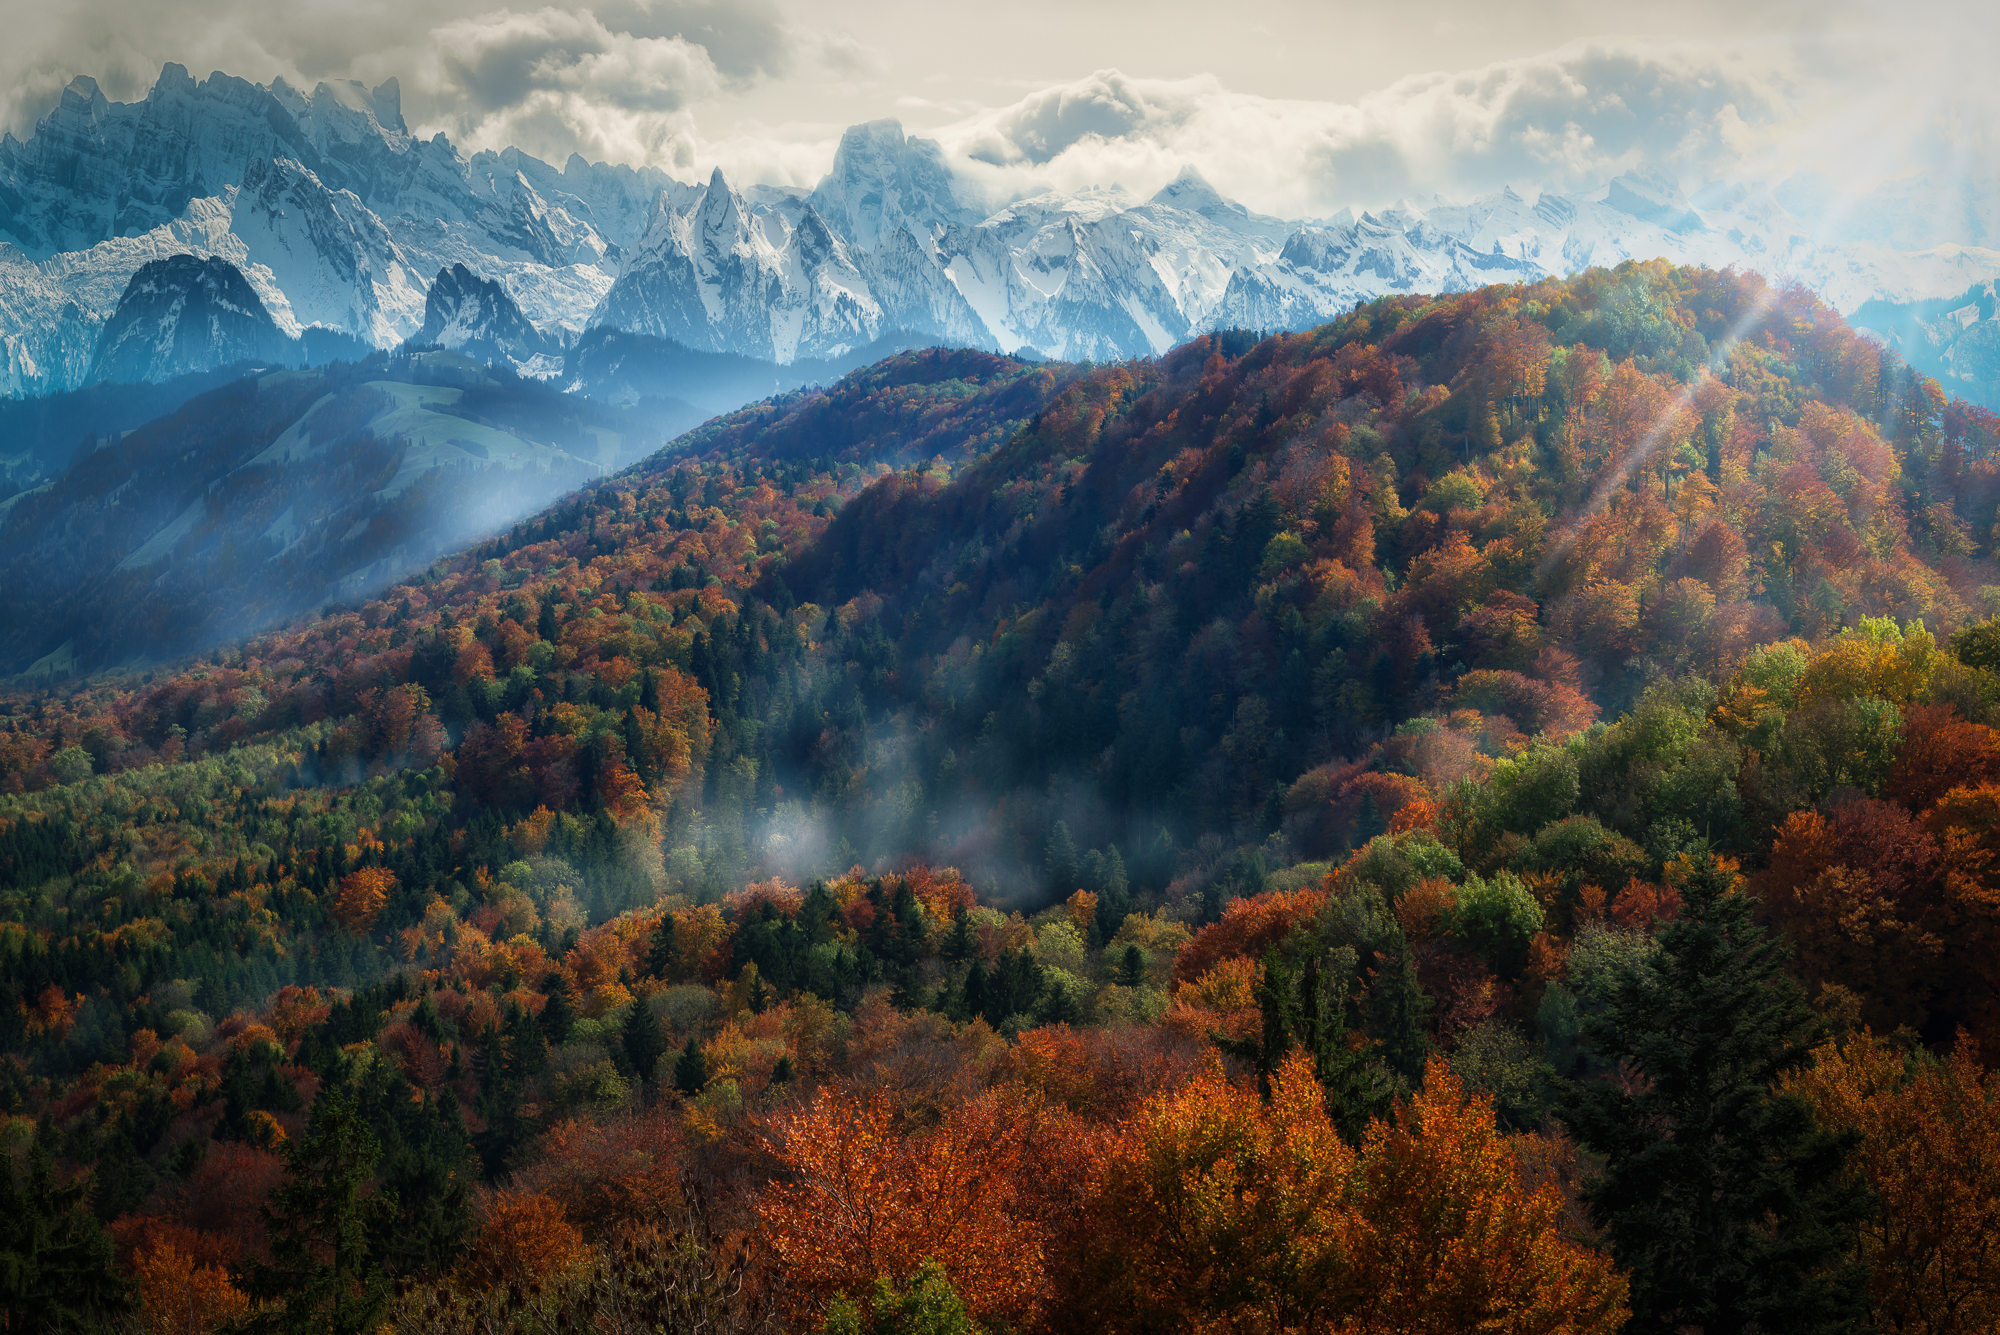 John Wall Iphone Wallpaper Autumn In The Alps Full Hd Wallpaper And Background Image